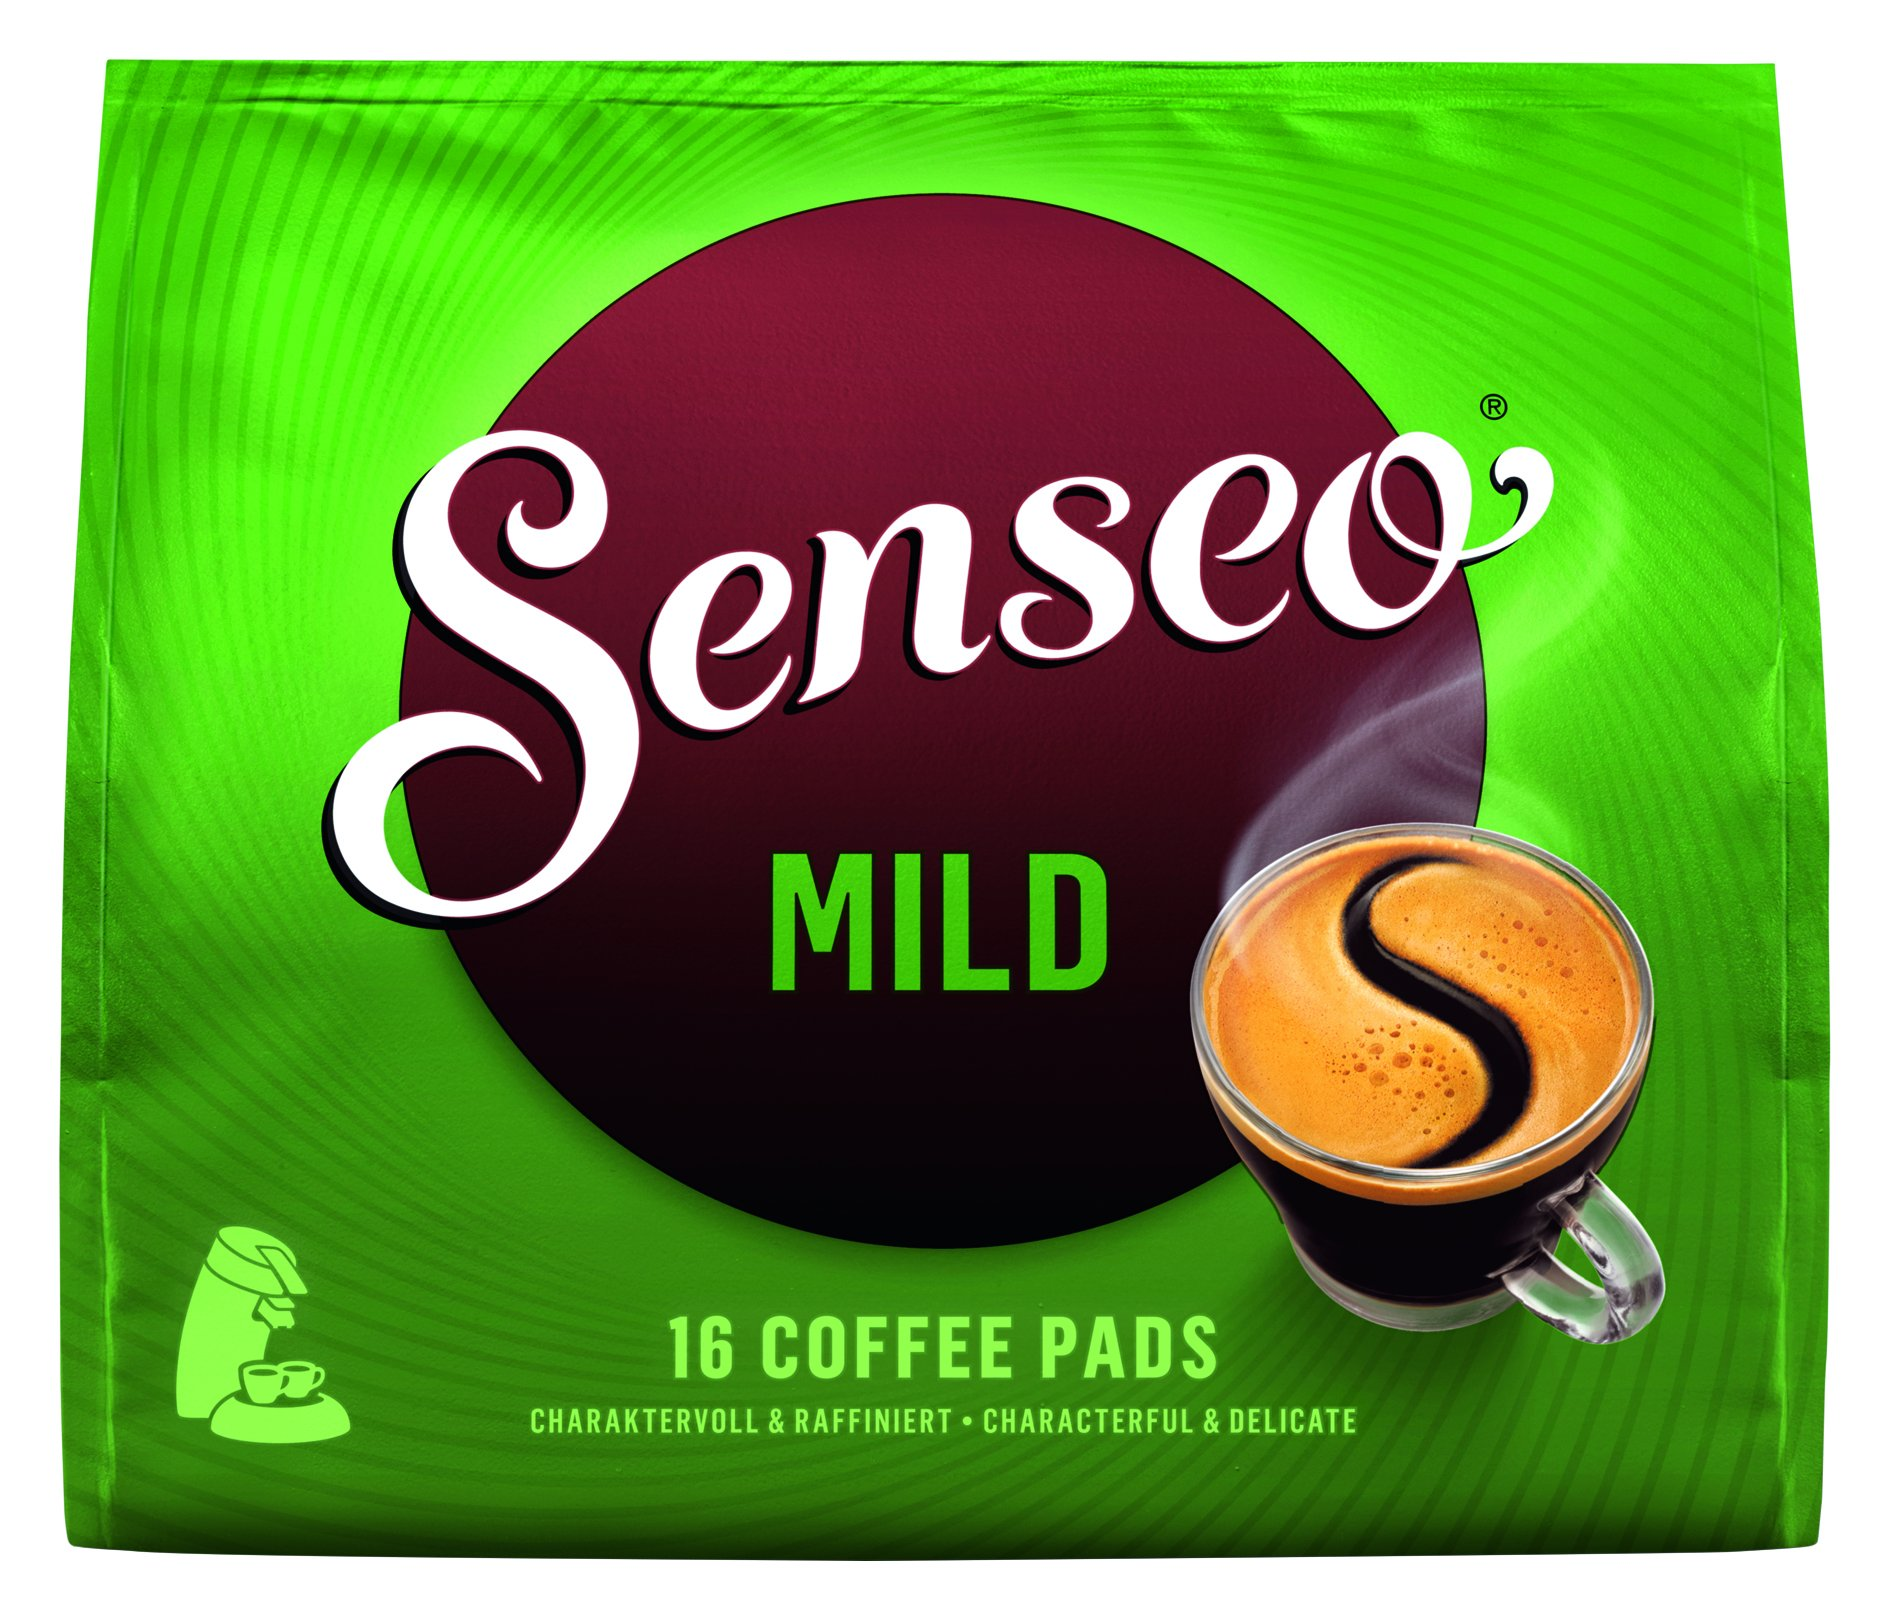 SENSEO MILD Light Roast Coffee Pods, 16 Count (Pack of 10), Ground